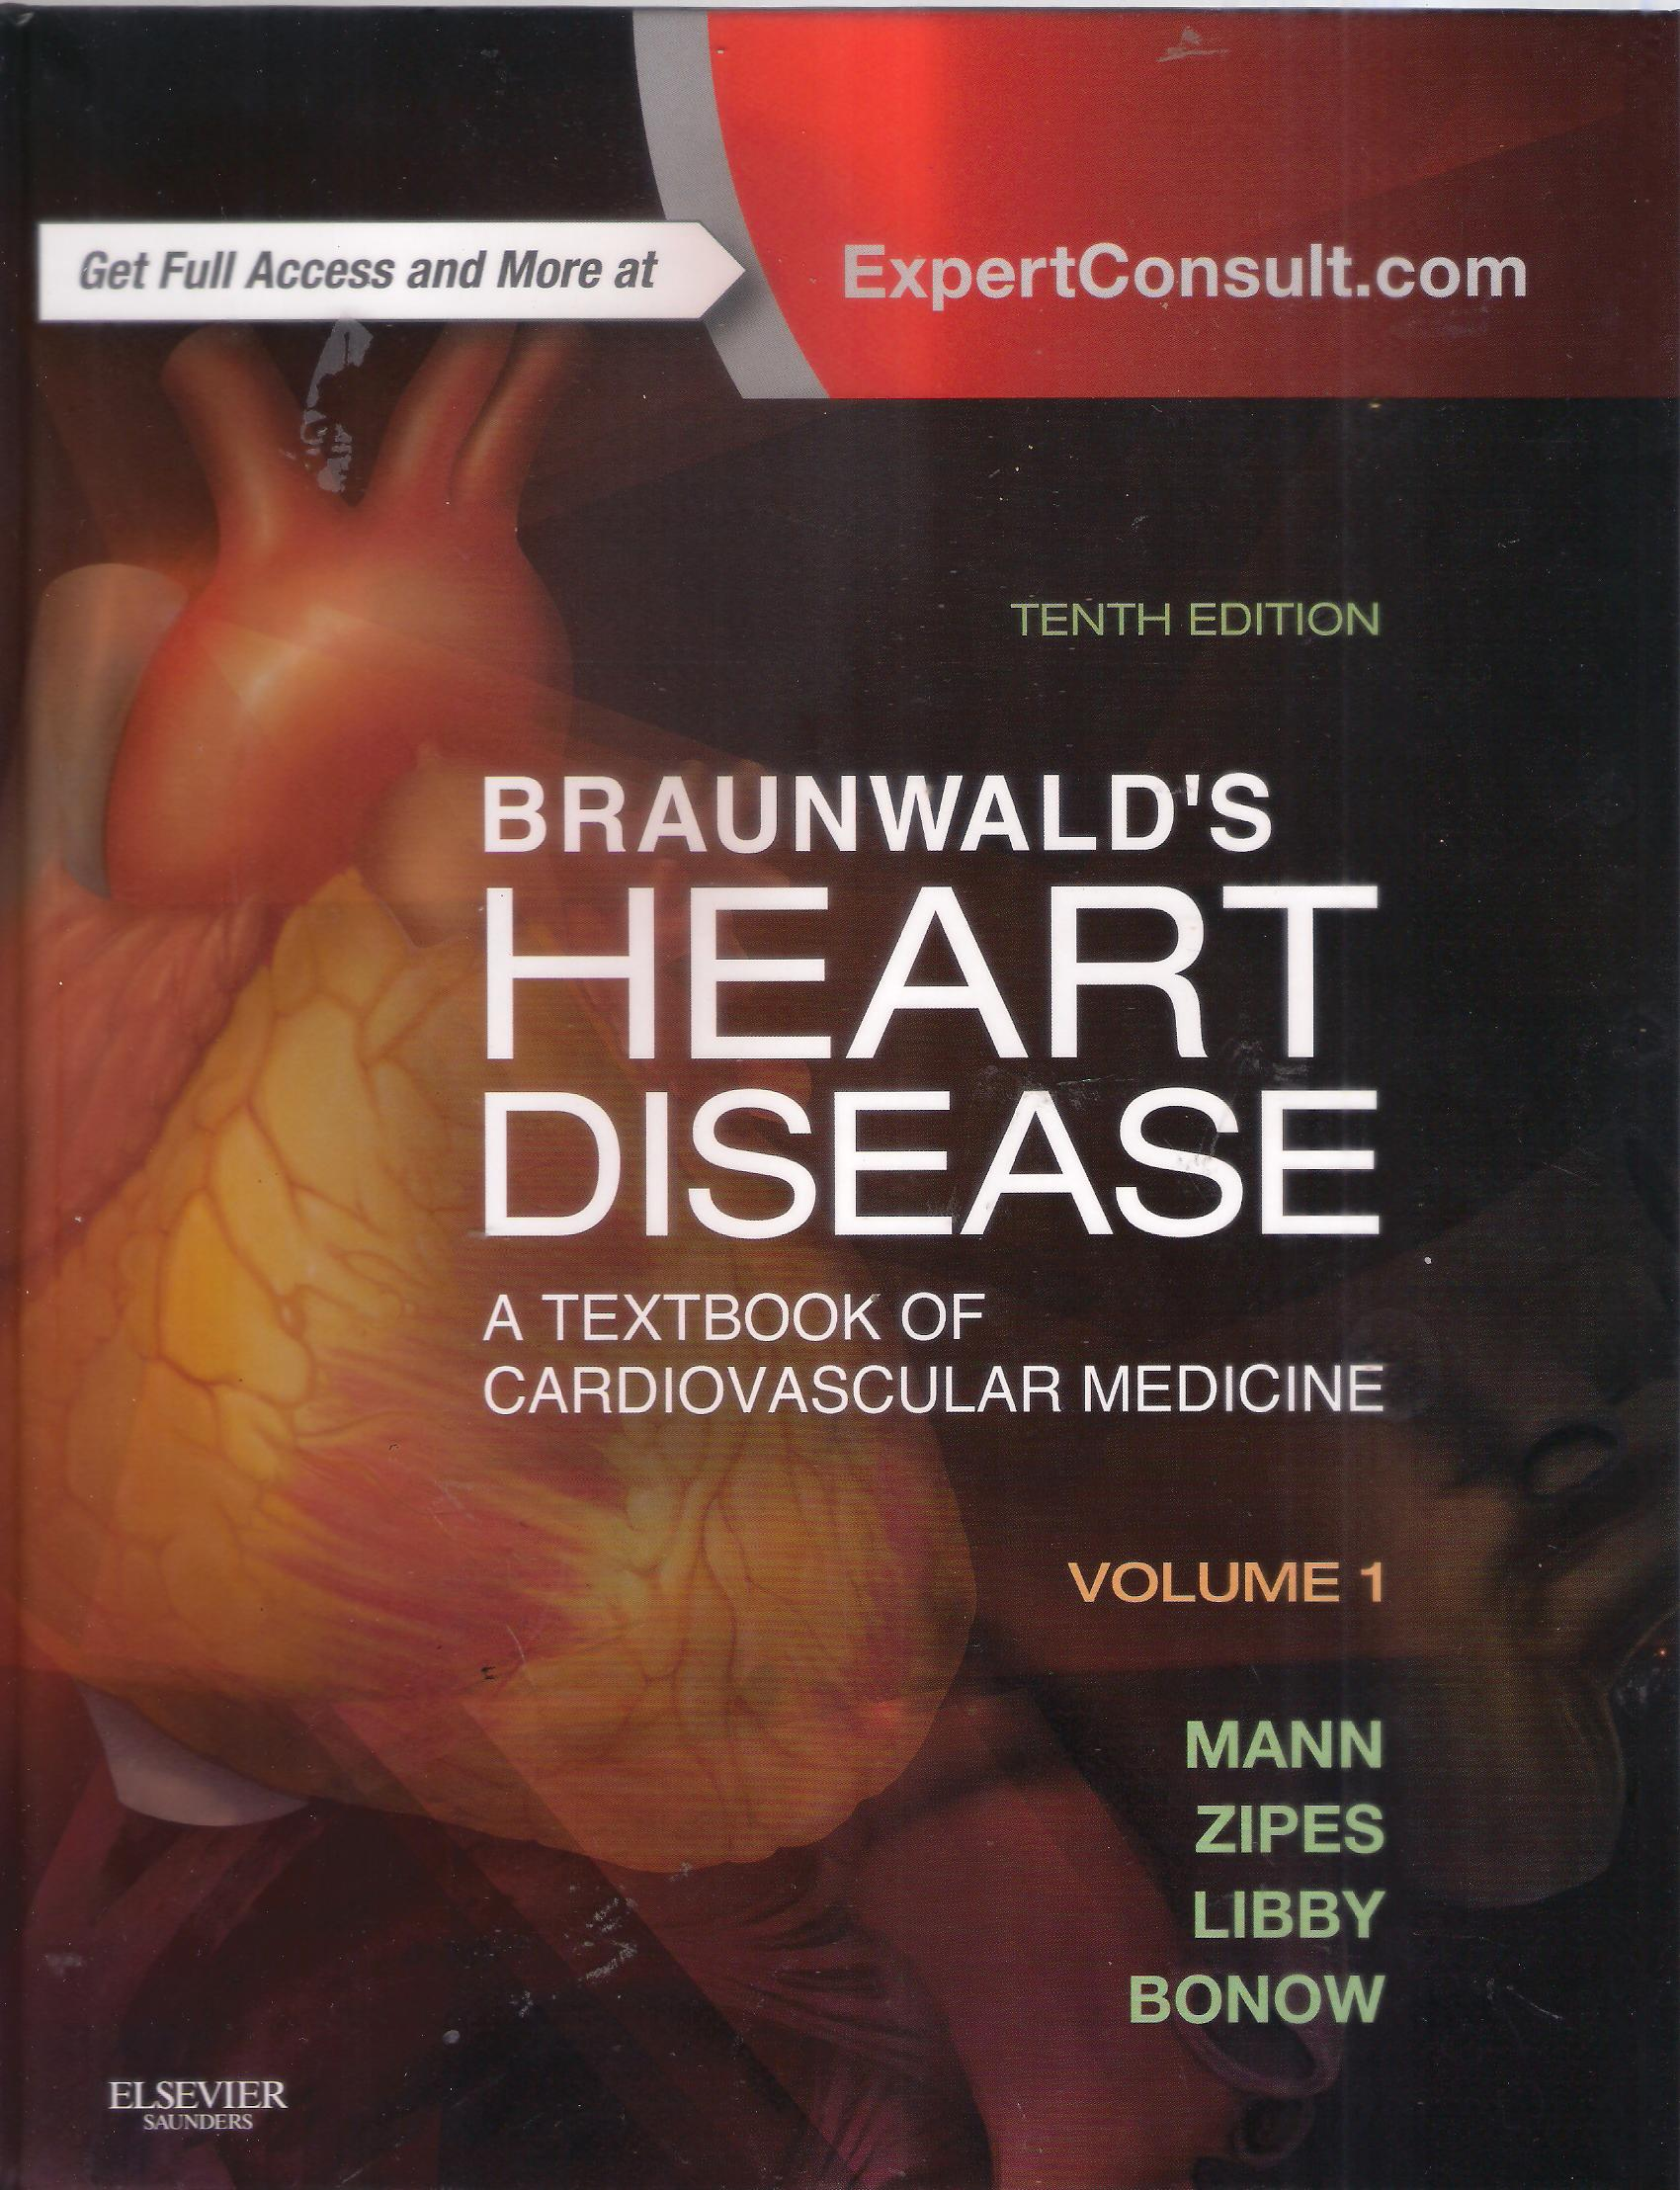 Braunwald's Heart Disease: a textbook of cardiovascular medicine volume 1